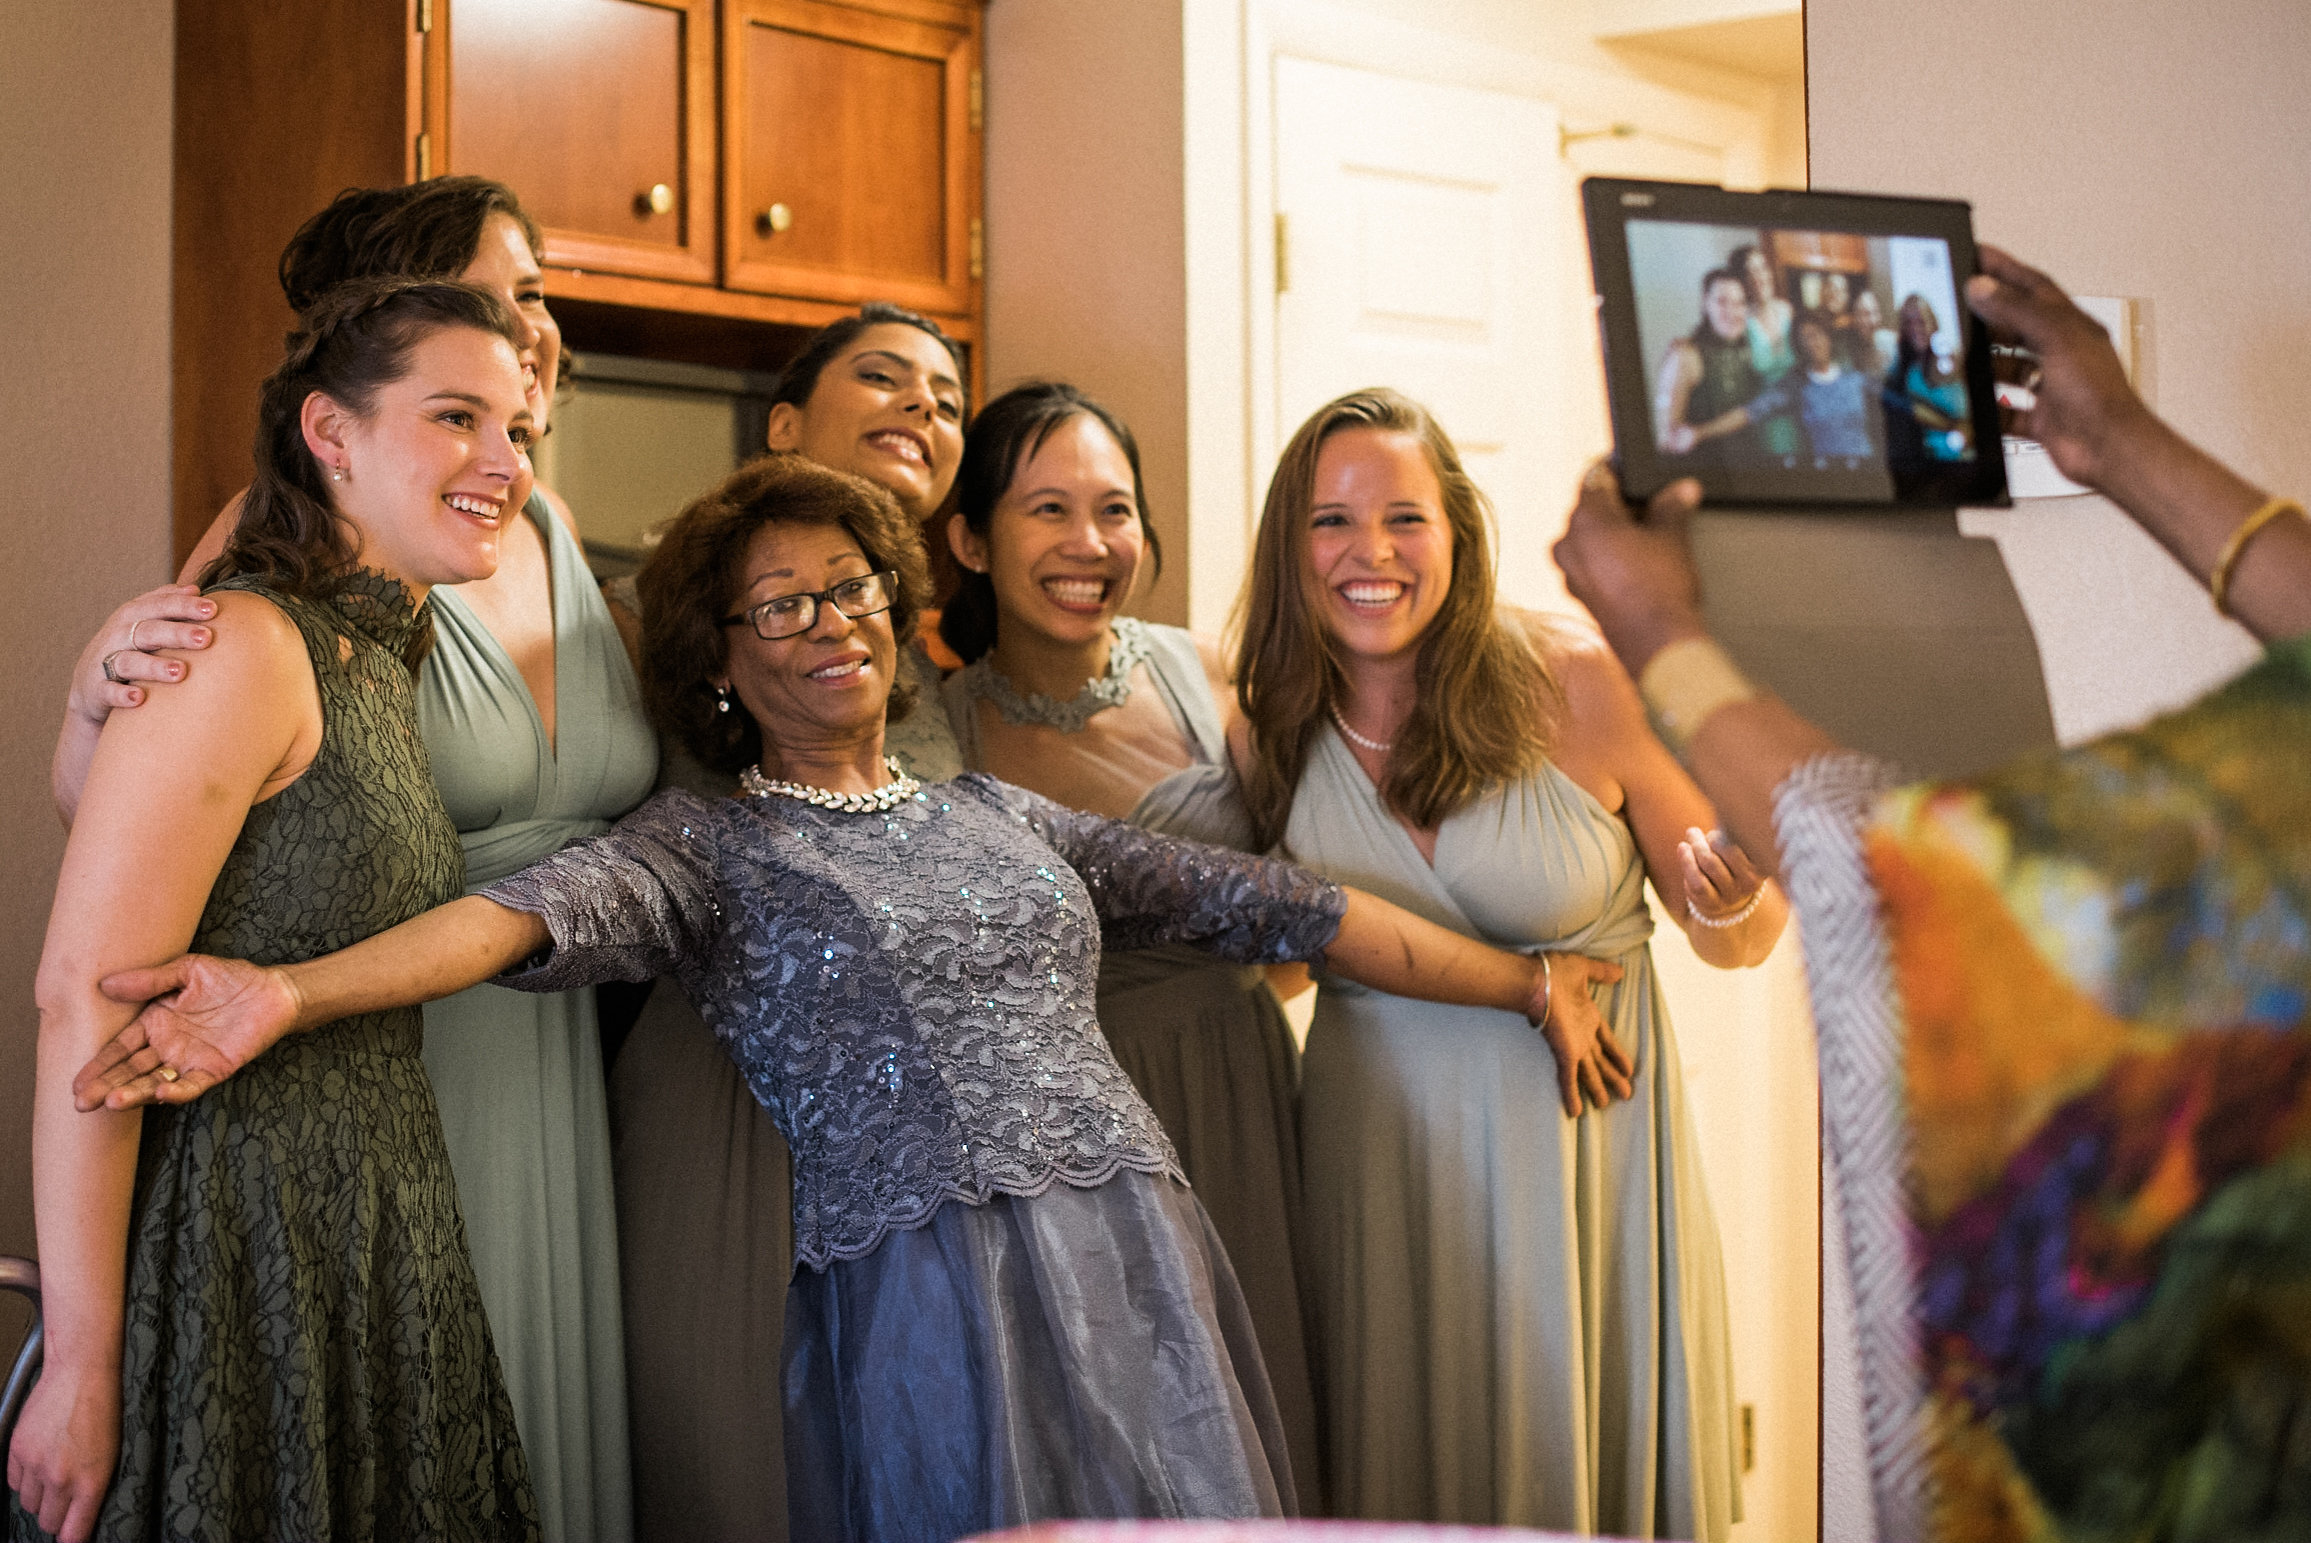 Mother of bride and bridesmaids